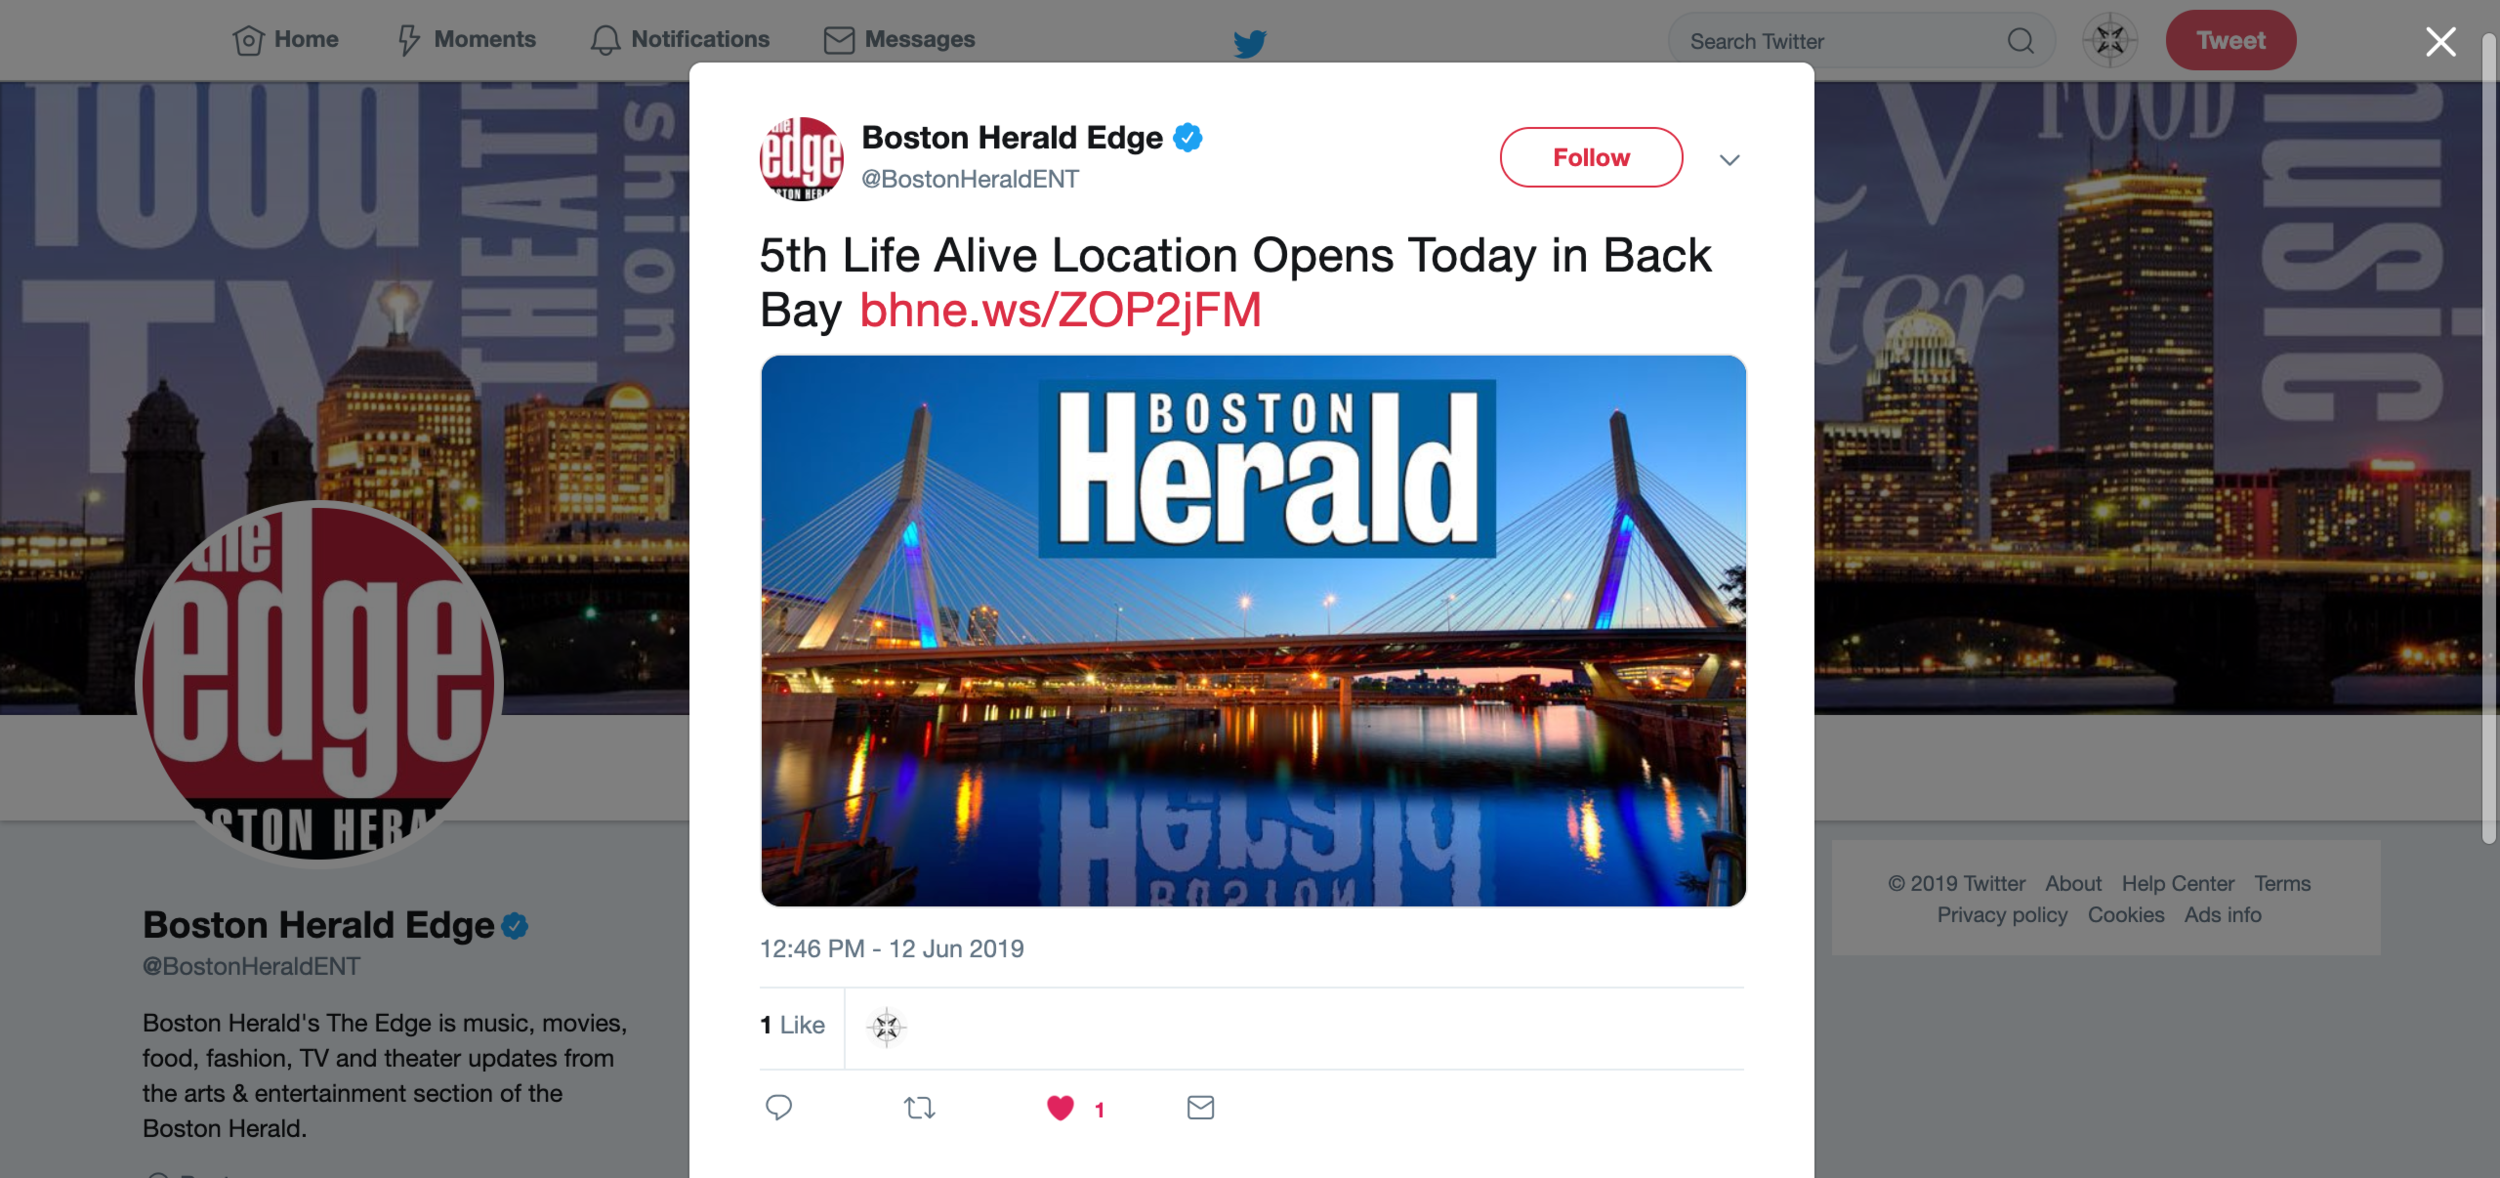 2019.06.12_Boston Herald, The Edge, Twitter_Life Alive Back Bay.png